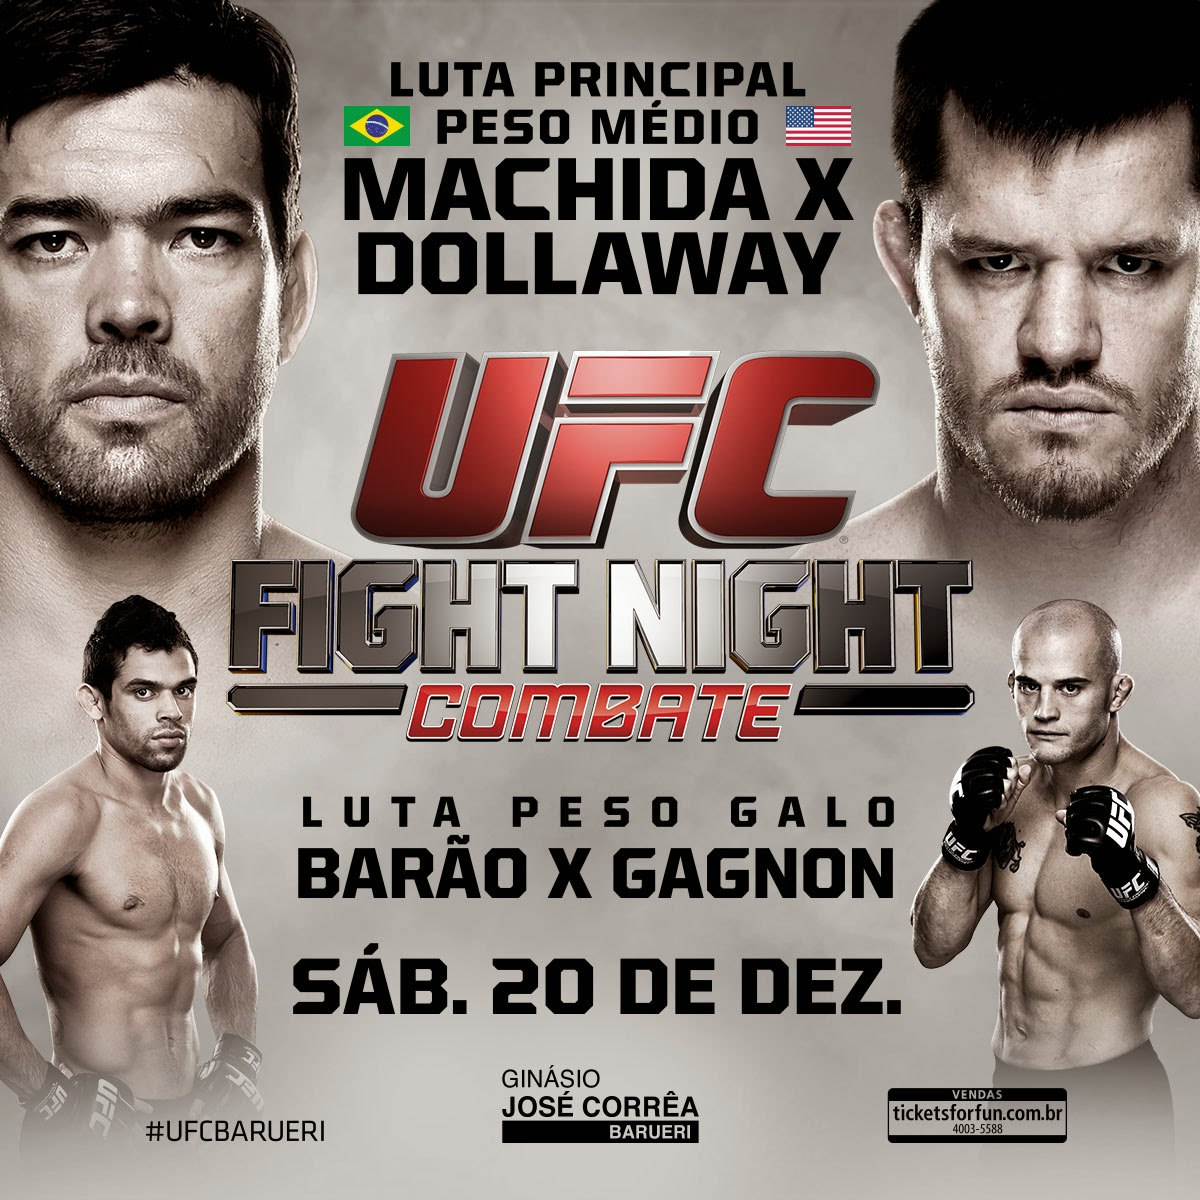 UFC Fight Night: Machida vs Dollaway